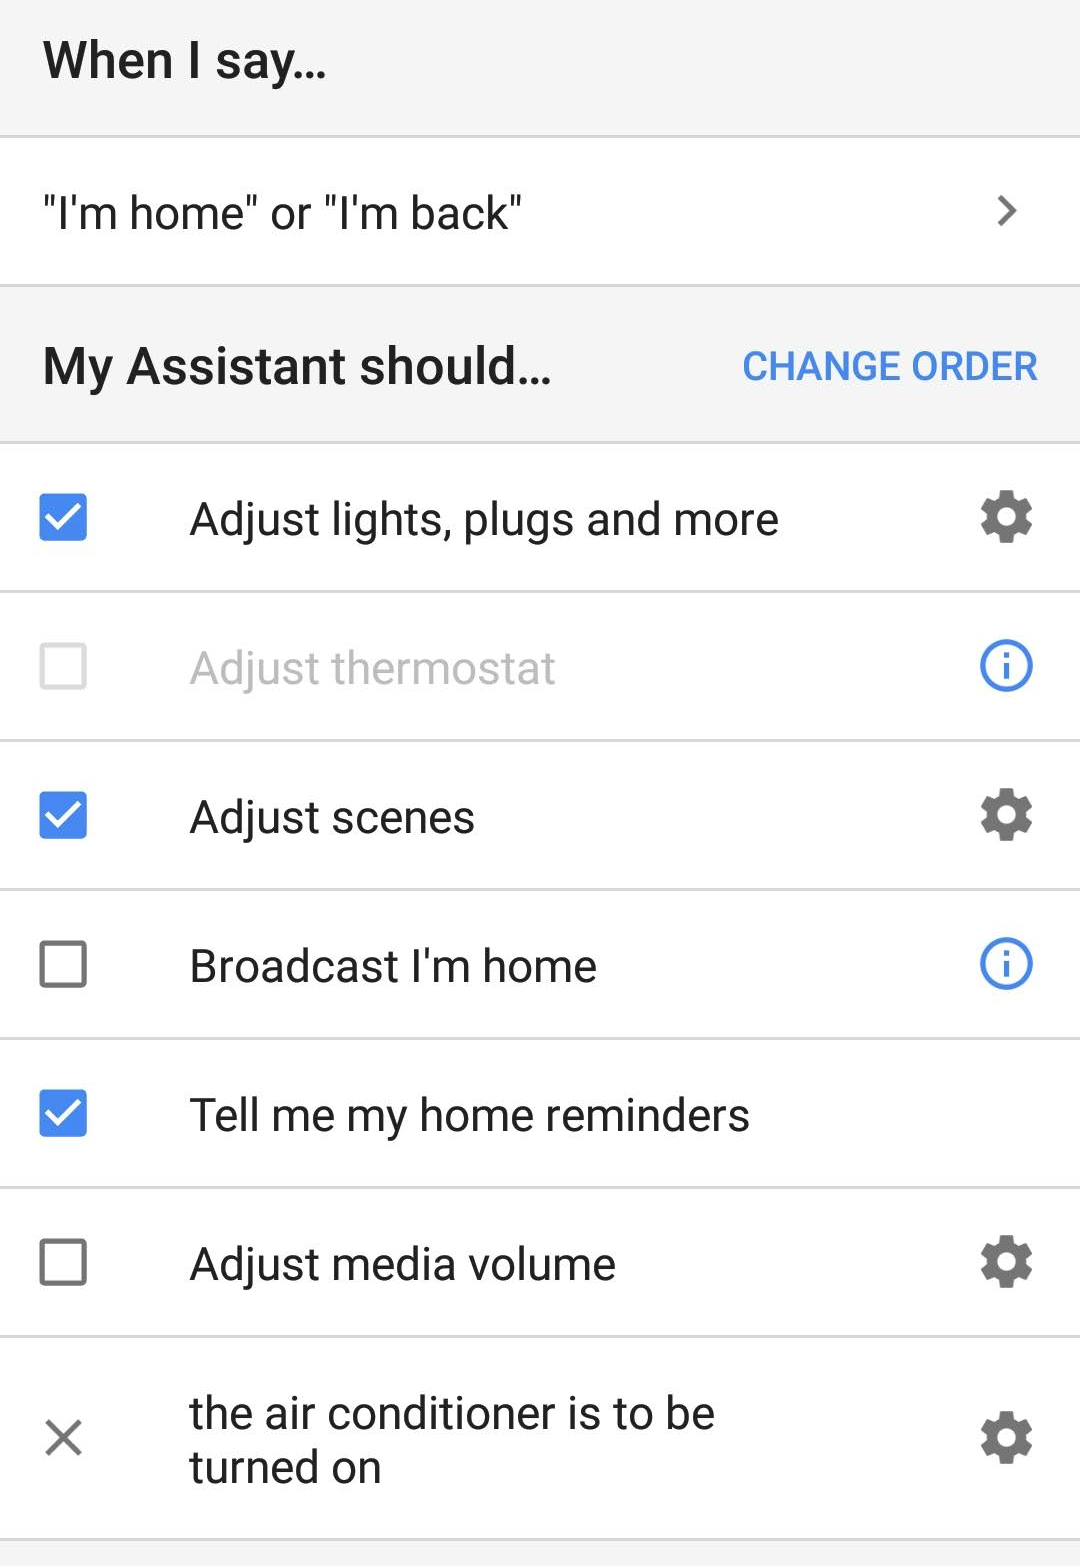 Remotely turning on my air conditioner through Google Assistant